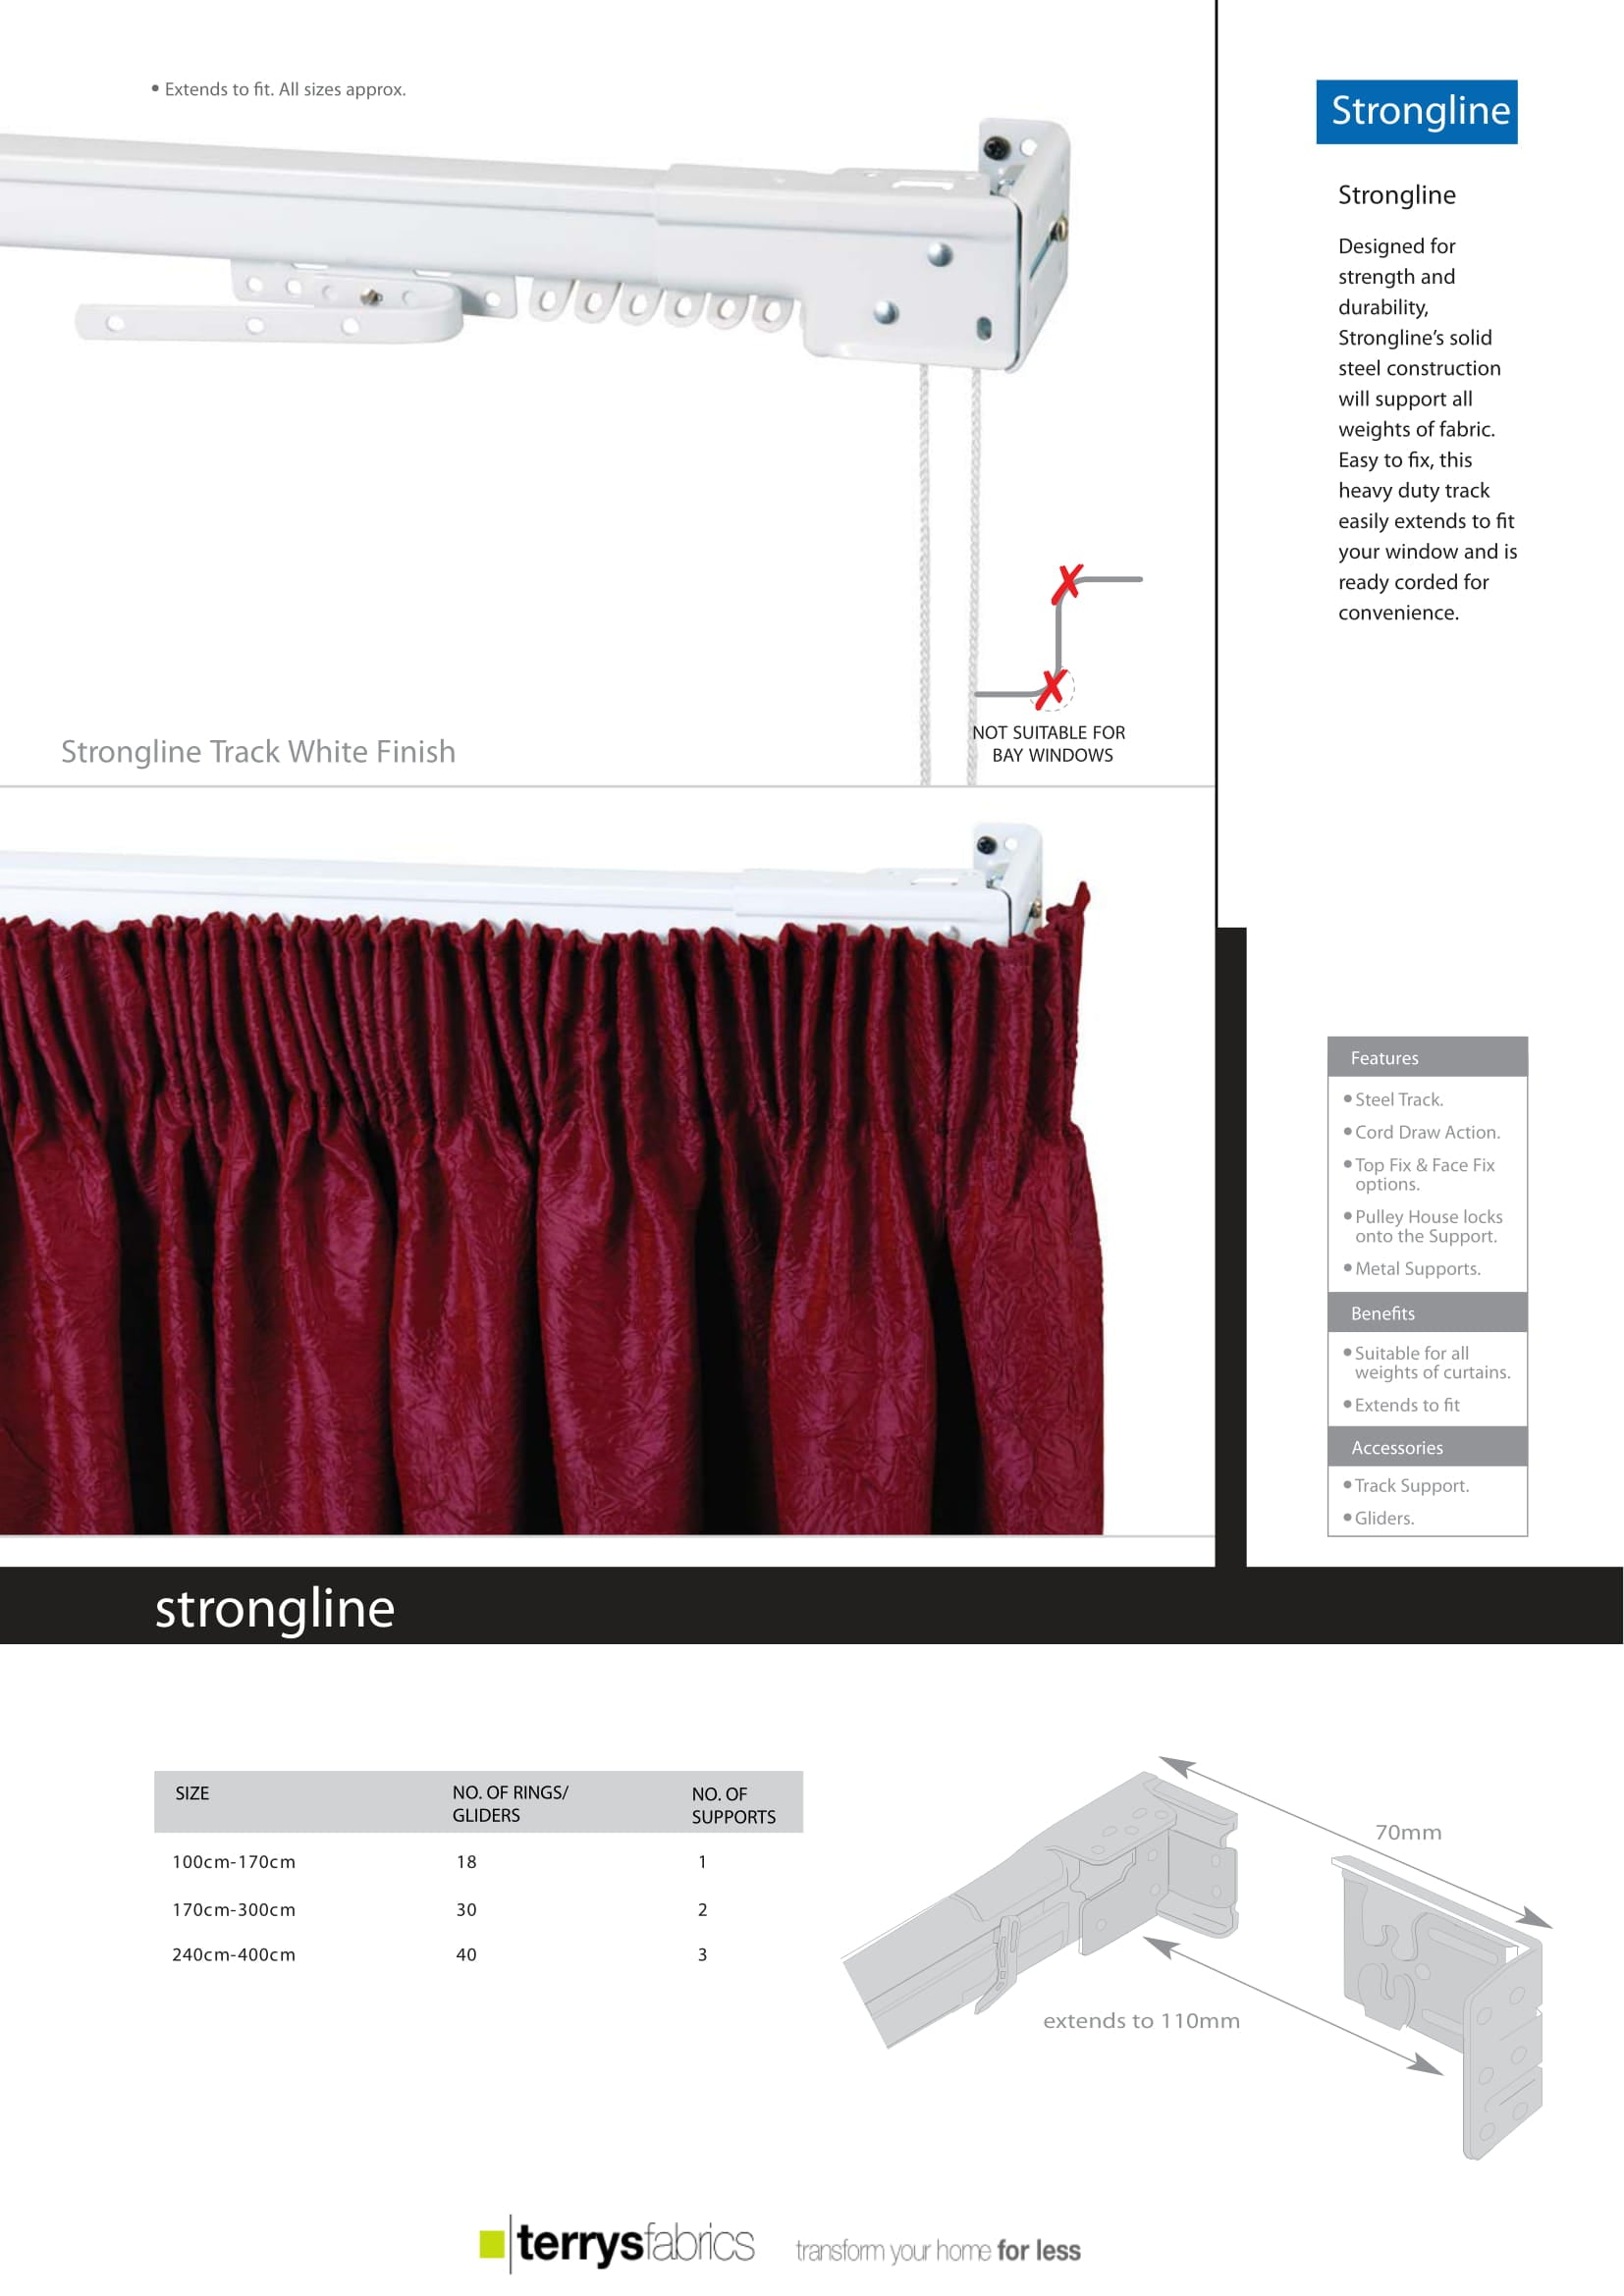 Strongline Curtain Track Product Details